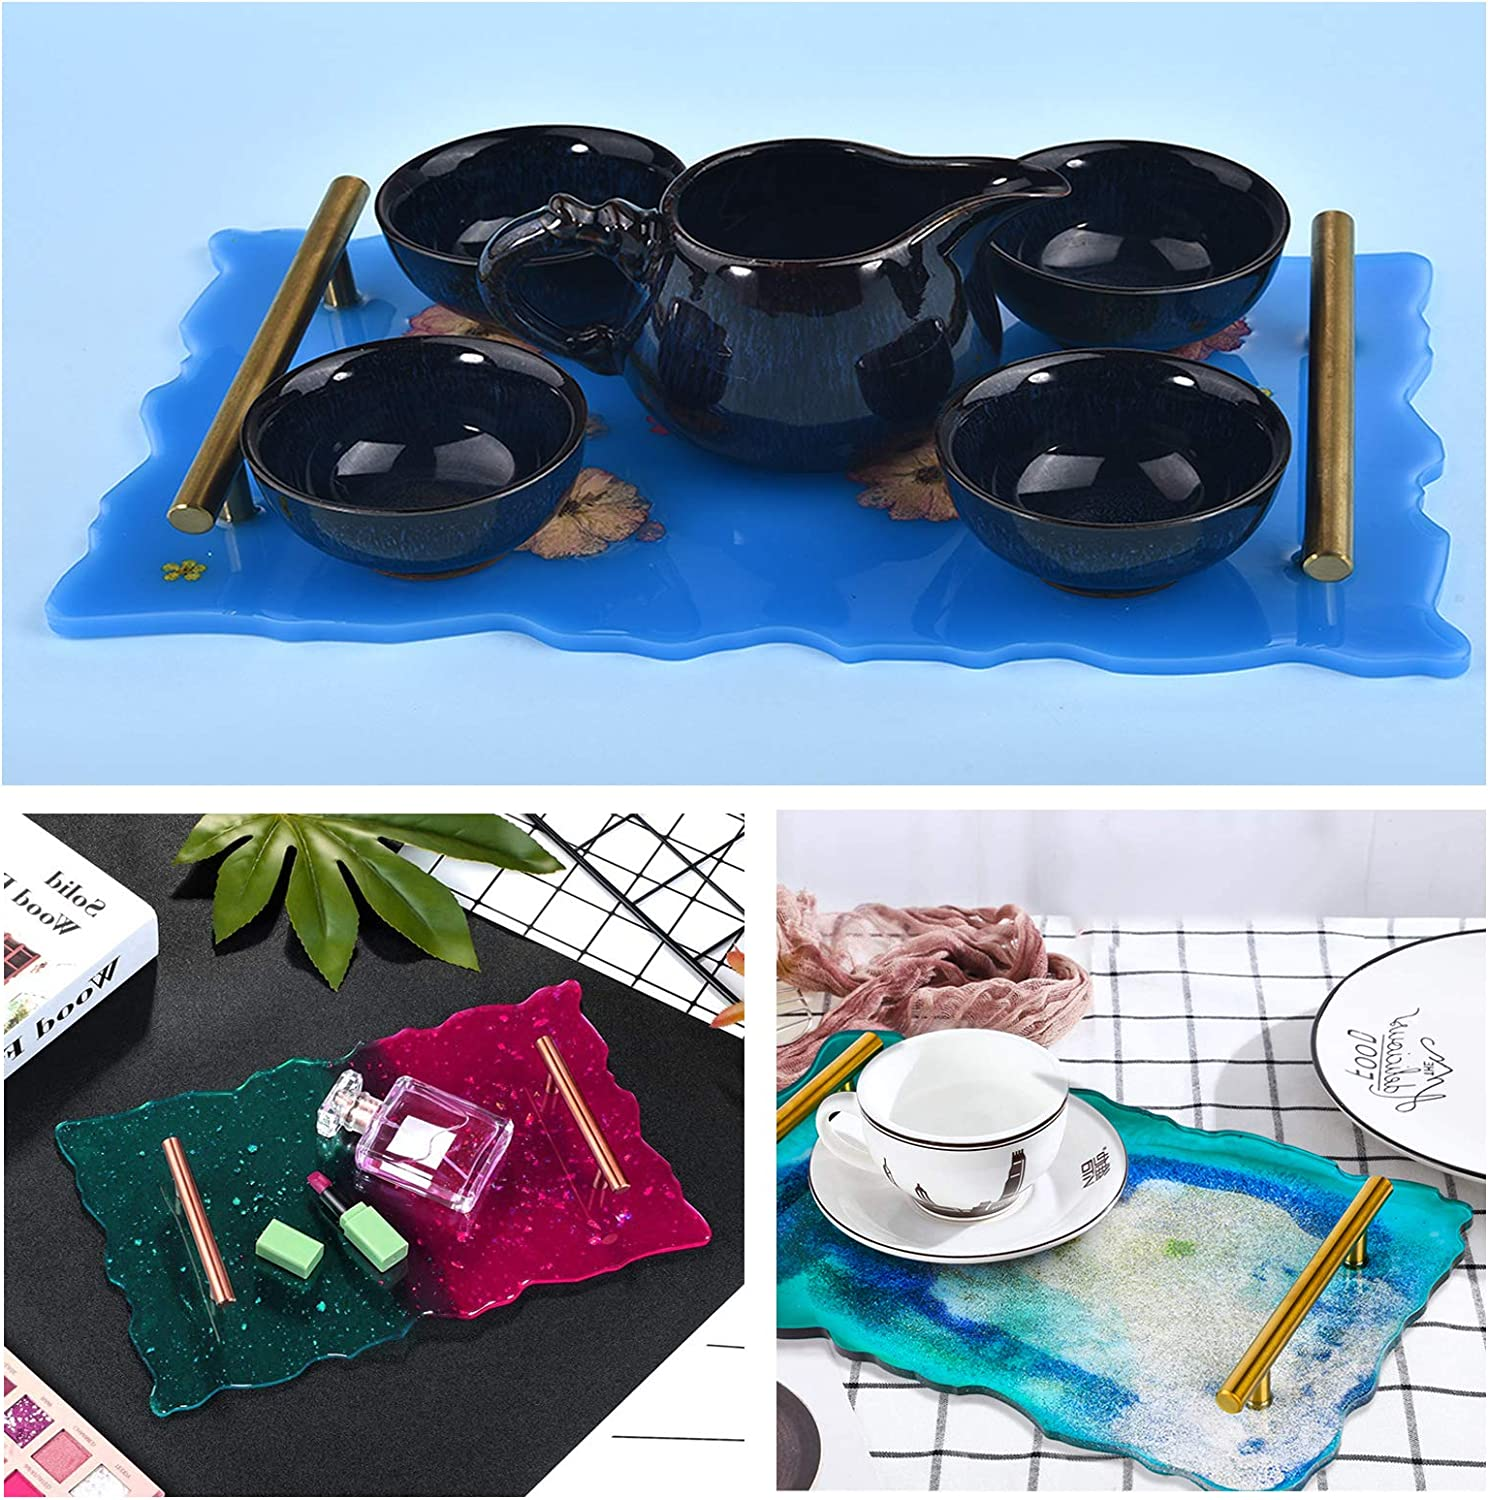 Home Decoration Coaster Silicone Tray Mold for Resin-1 Pcs Platter Mold /& 4 Pcs Coaster Molds with 2 Pcs Gold Handles Fruit Tray Epoxy Resin Craft Casting Molds for DIY Making Serving Platter